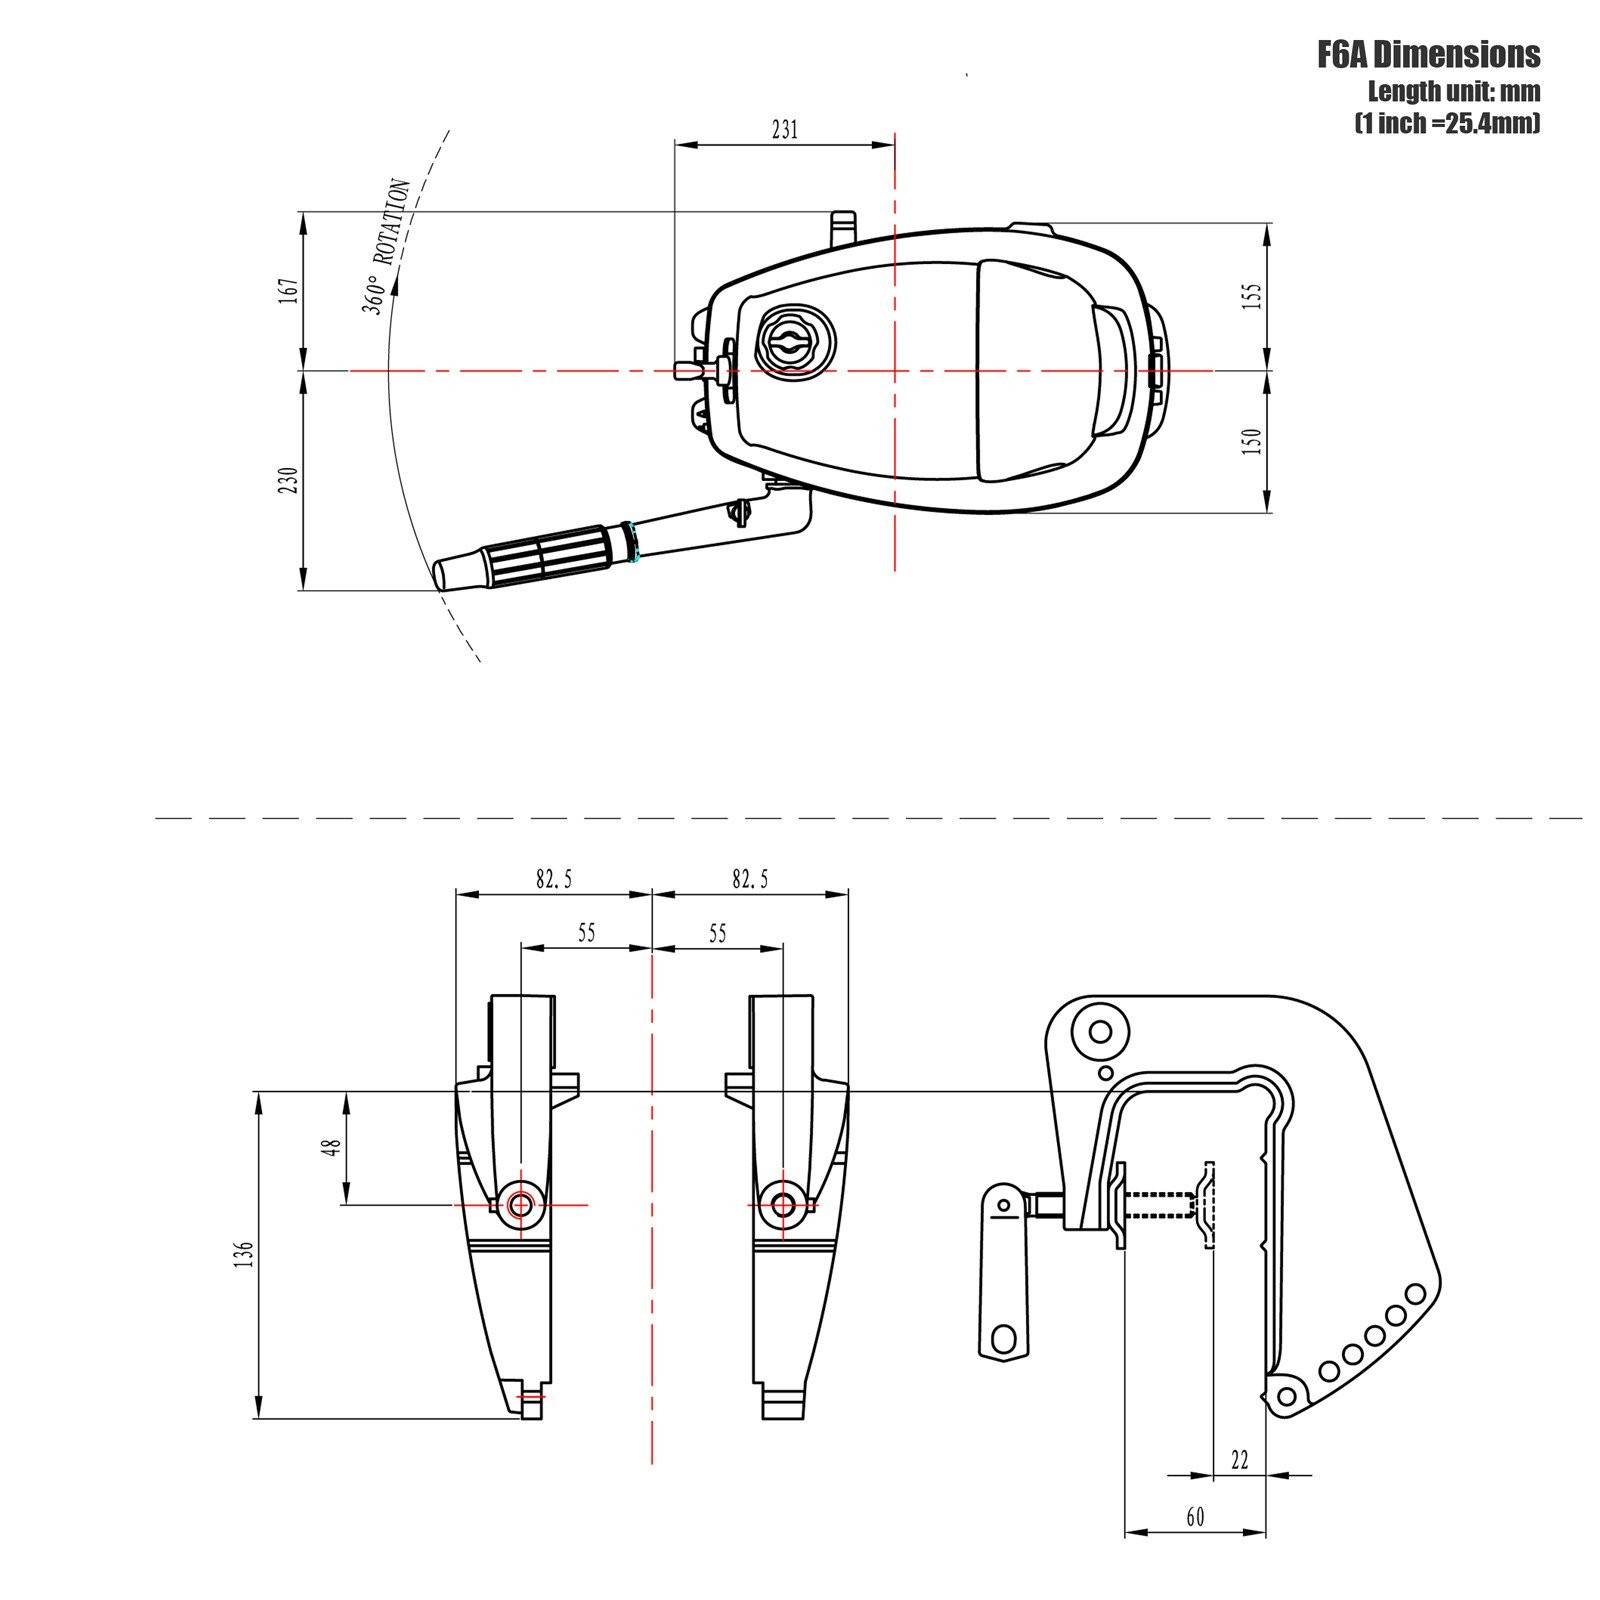 Outboard Engine Diagram Parsun 6hp Portable 4 Stroke Outboard Motor Tiller Handle Built In Of Outboard Engine Diagram